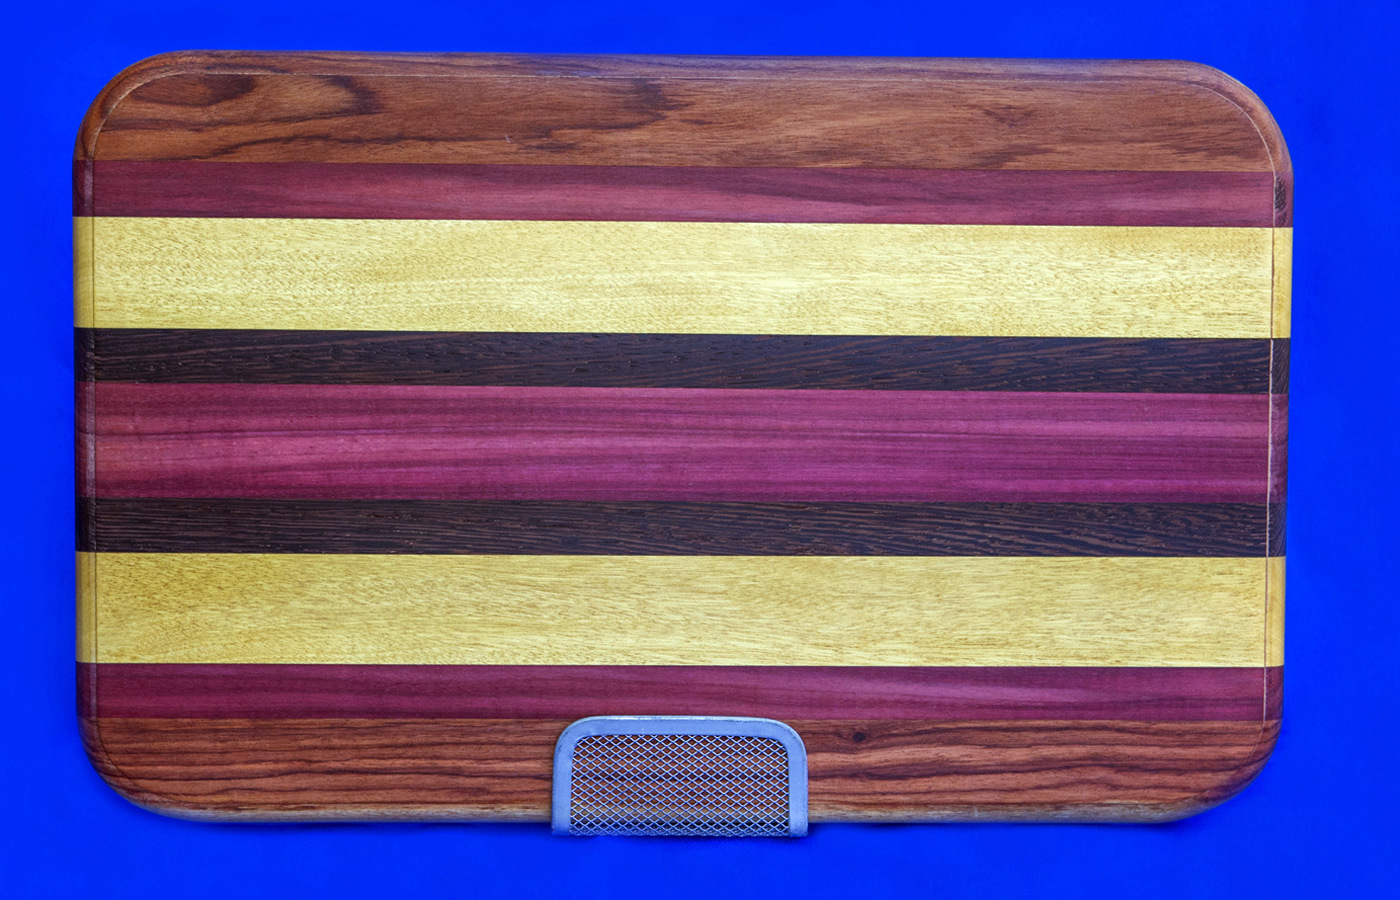 Cutting board for web viewing 1200 x 900 x 90.jpg